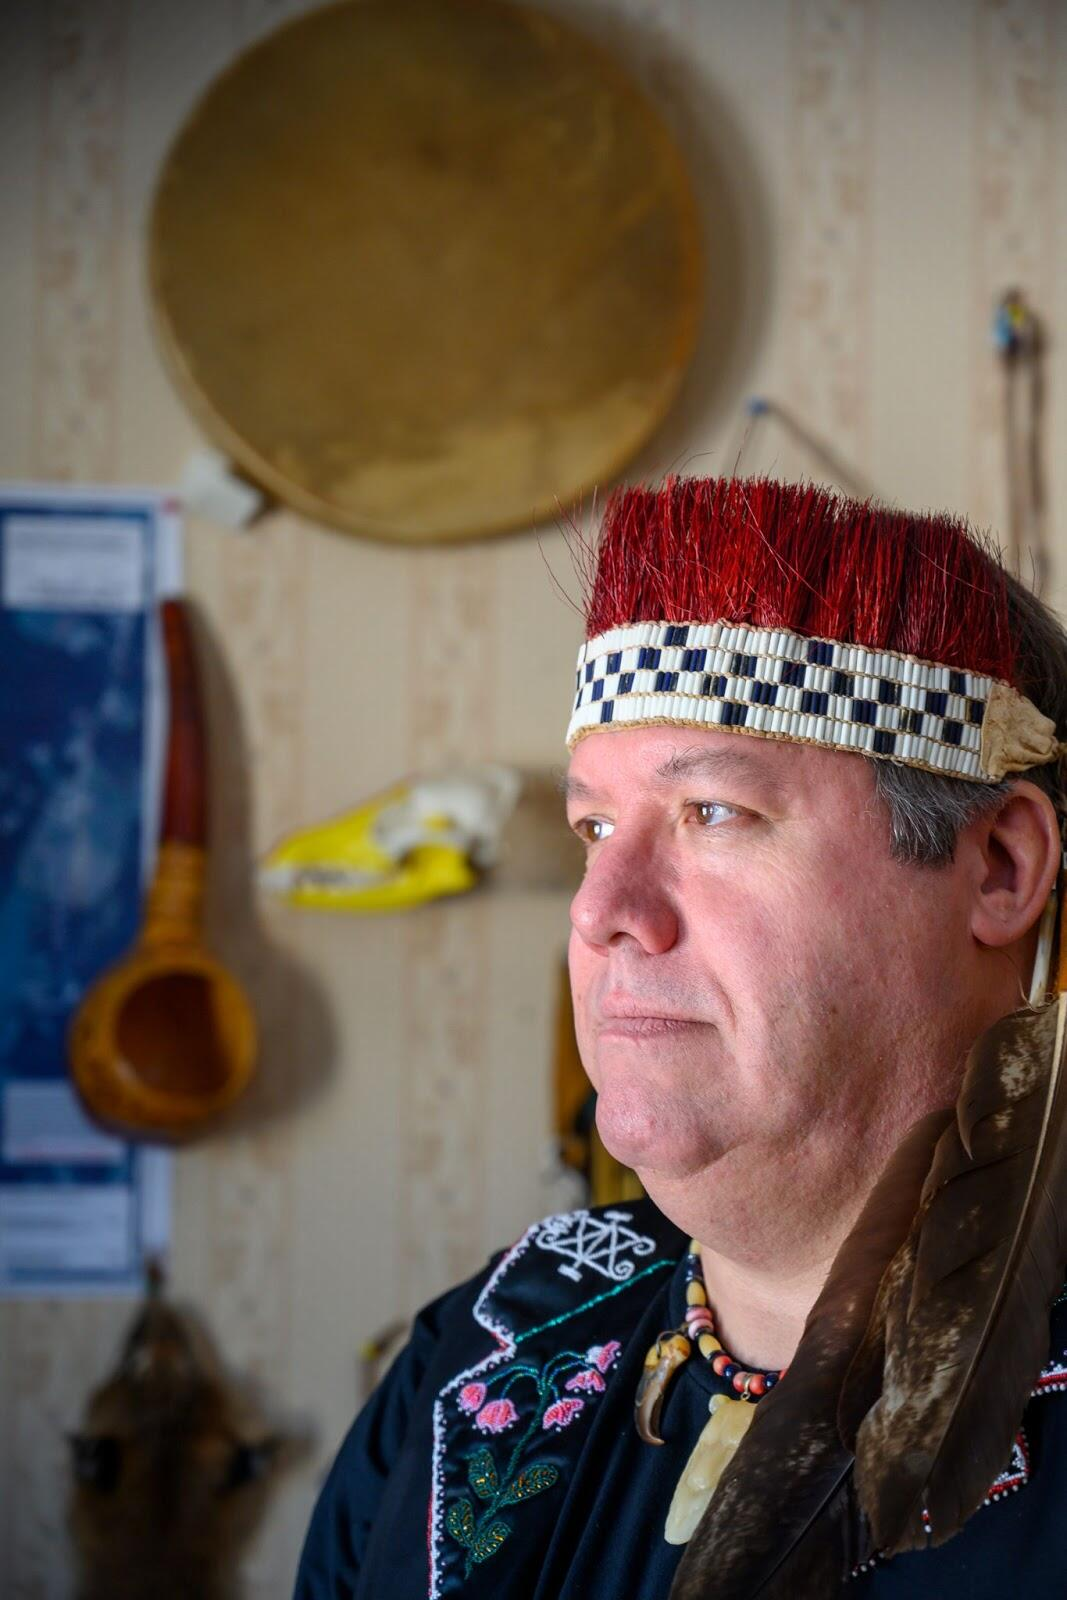 Chief Don Stevens of the Nulhegan Band of the Coosuk Abenaki Nation photographed in his home wearing traditional headdress and beaded necklace. Photo: Caleb Kenna Photography